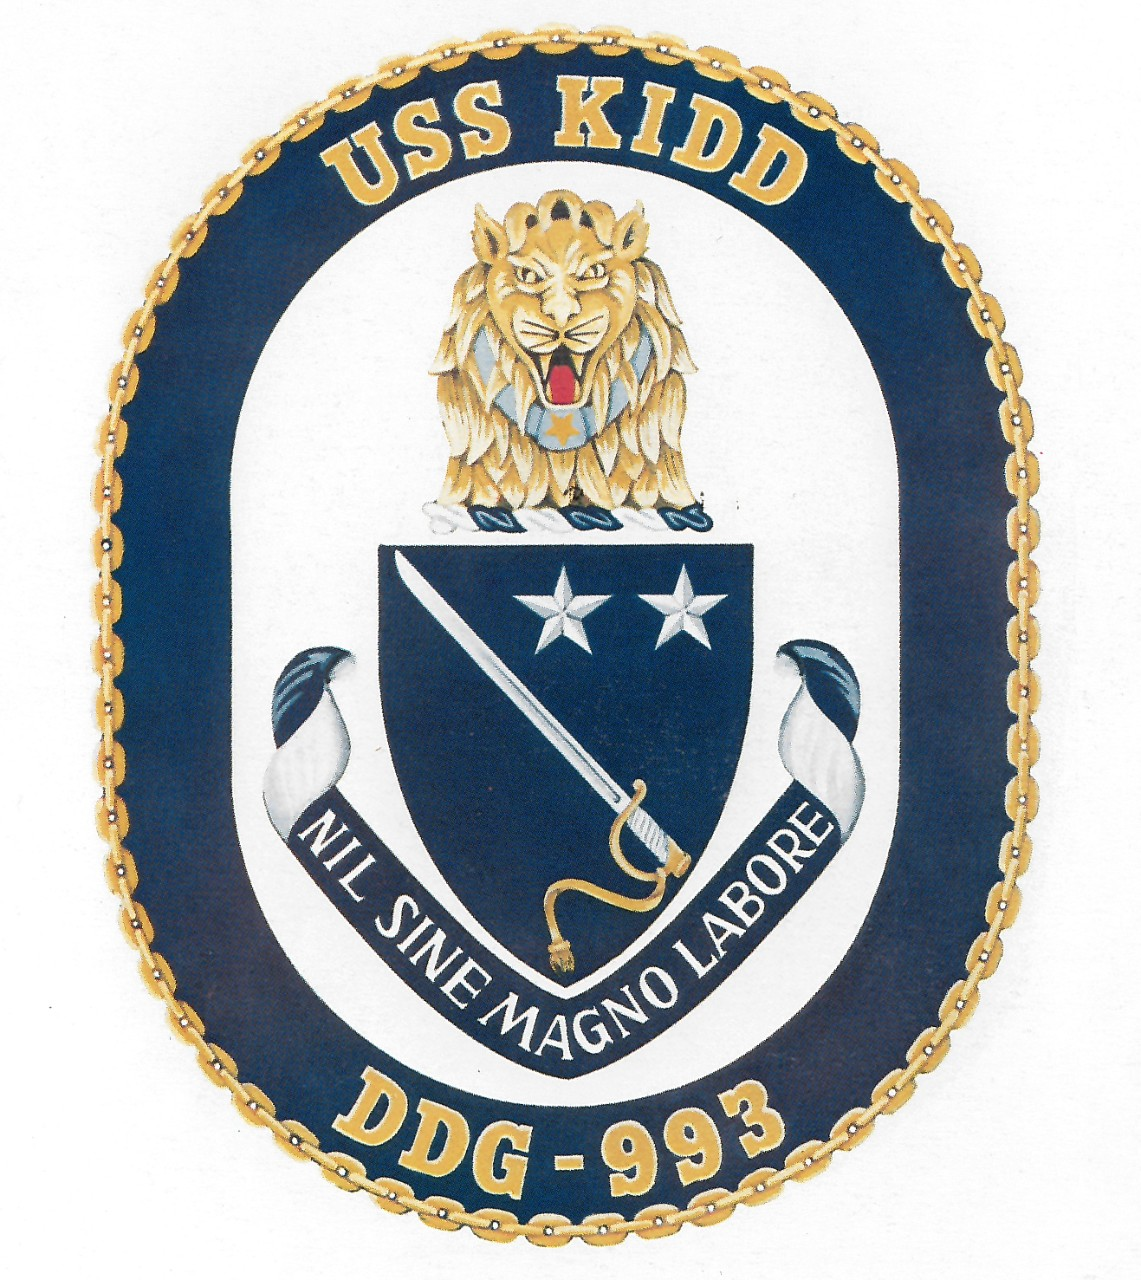 "Kidd's crest incorporates a number of elements that reflect the career and accomplishments of both the first Kidd (DD-661) and her namesake, Rear Adm. Isaac C. Kidd.  An endless gold chain encircles the crest, enclosing a blue shield which represents the ocean.  Atop this shield sits a roaring lion symbolizing the strength, courage, and leadership that all crew members were to aspire to, something which was further emphasized in the ship's motto ""Nil Signo Magno Labore"" (""Nothing without great labor"").  The lion also proudly bears a ribbon with a gold star on its neck, which represents the Medal of Honor Rear Adm. Kidd posthumously received for his courageous actions on board battleship Arizona (BB-39) during the Japanese attack on Pearl Harbor.  Rear Adm. Kidd's career in its entirety is represented by the naval officer's sword at the center of the shield, as well as the two stars in the upper corner which double as a both a symbol of his final rank and a reference to DD-661's participation in the Pacific theater of World War II and the Korean War. (NHHC Archives)"